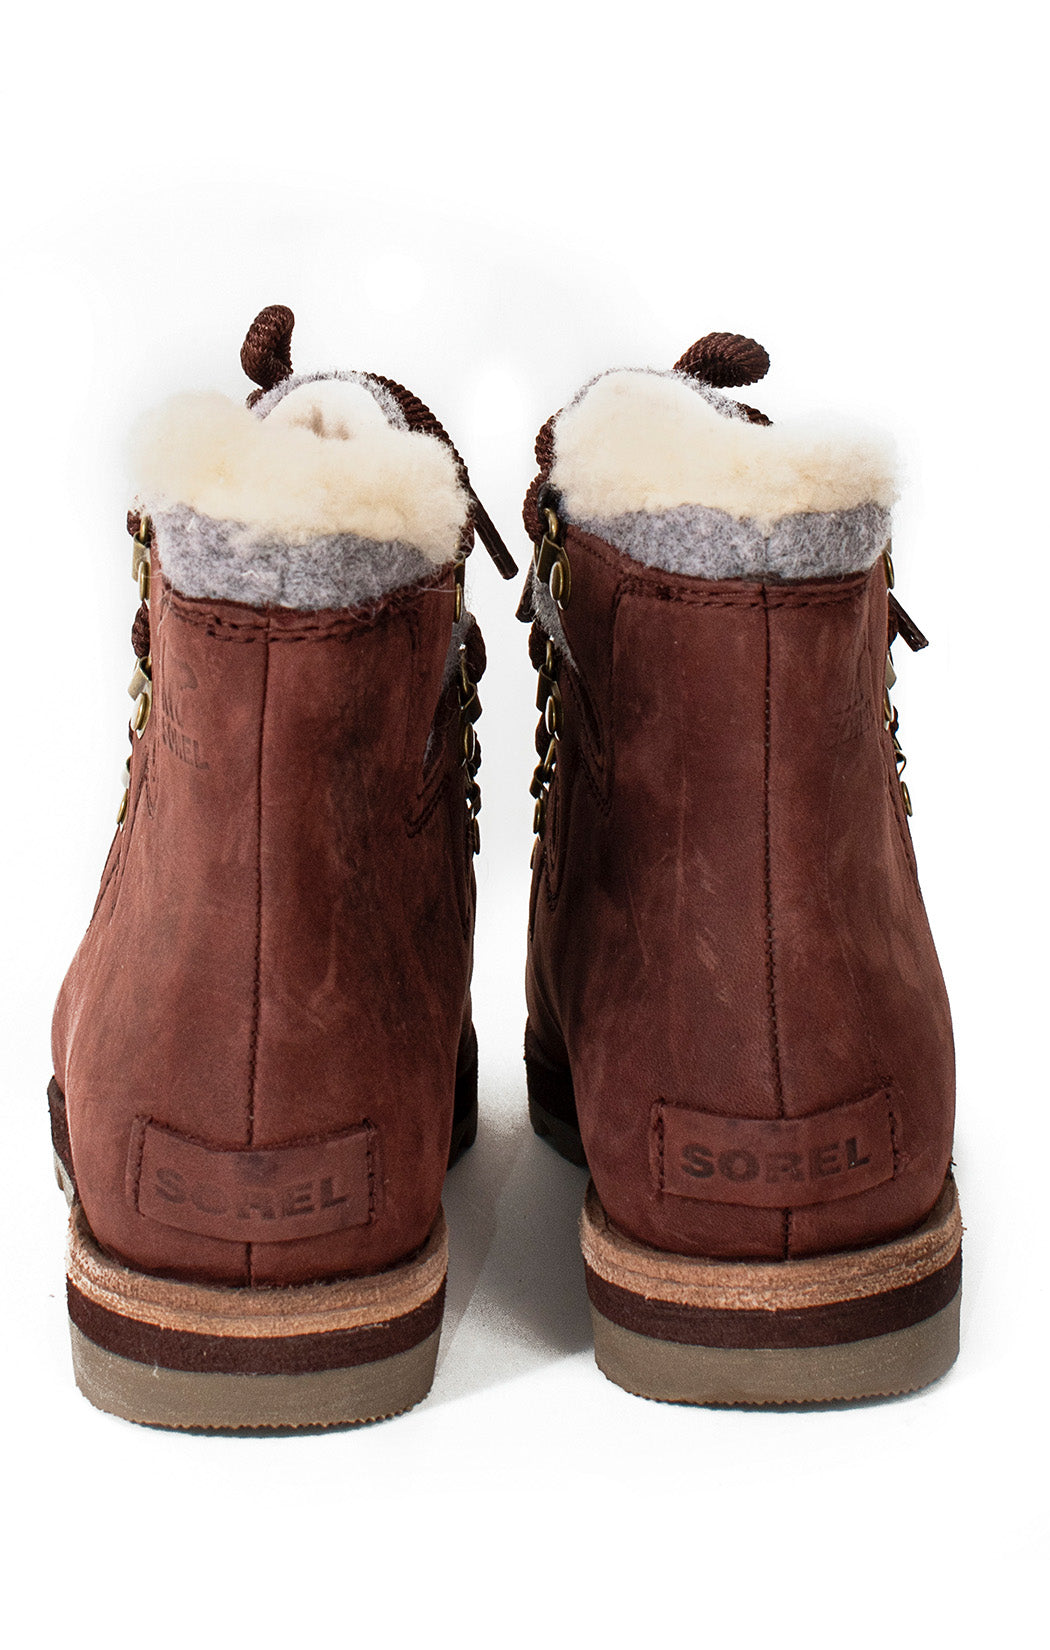 Back view of SOREL with tags Boots